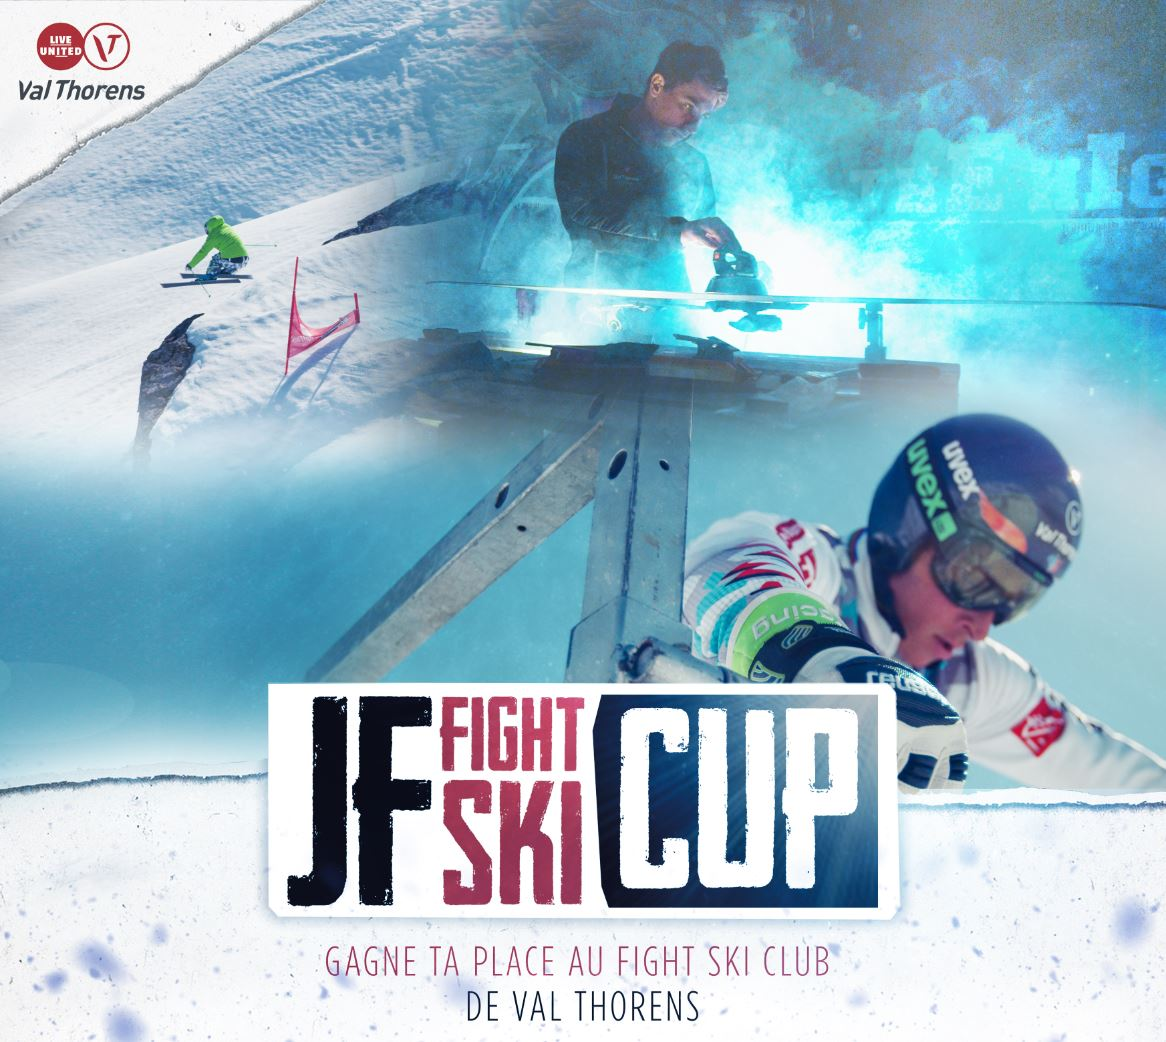 3RD EDITION OF THE FIGHT SKI CUP - THE 13th AND 14th APRIL 2019 - STAY IN HOTEL OR APARTMENT FROM 98 € / PERS*